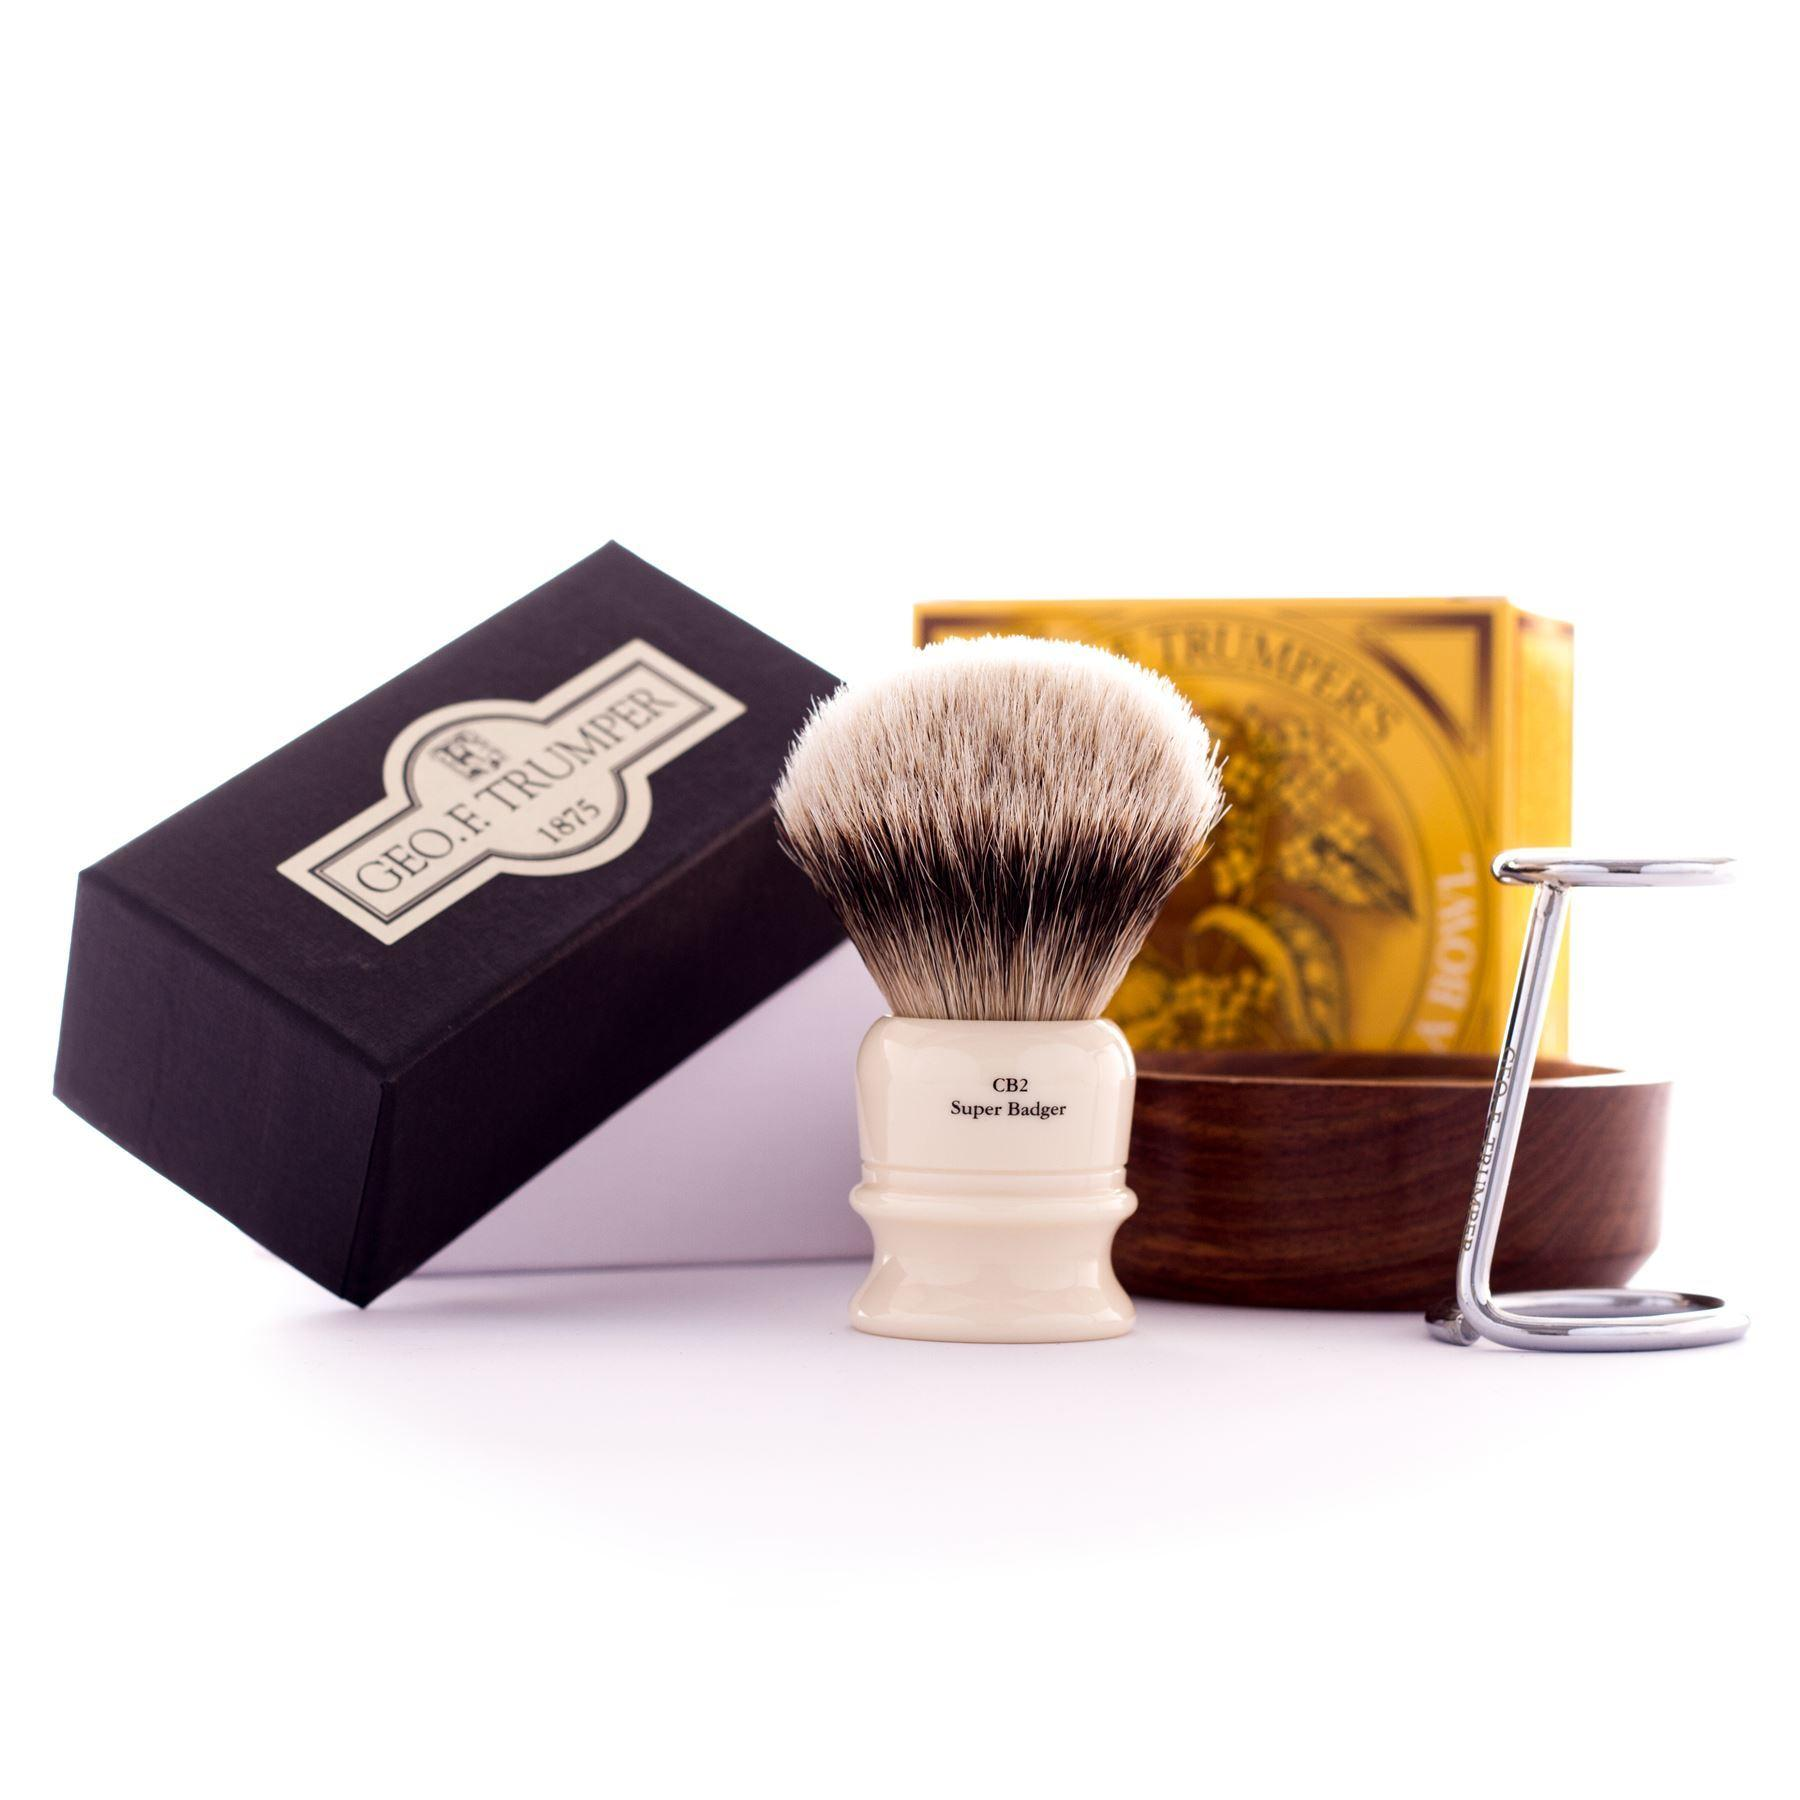 Geo F Trumper Super Badger Brush with Stand, Wooden Bowl & Sandalwood Soap